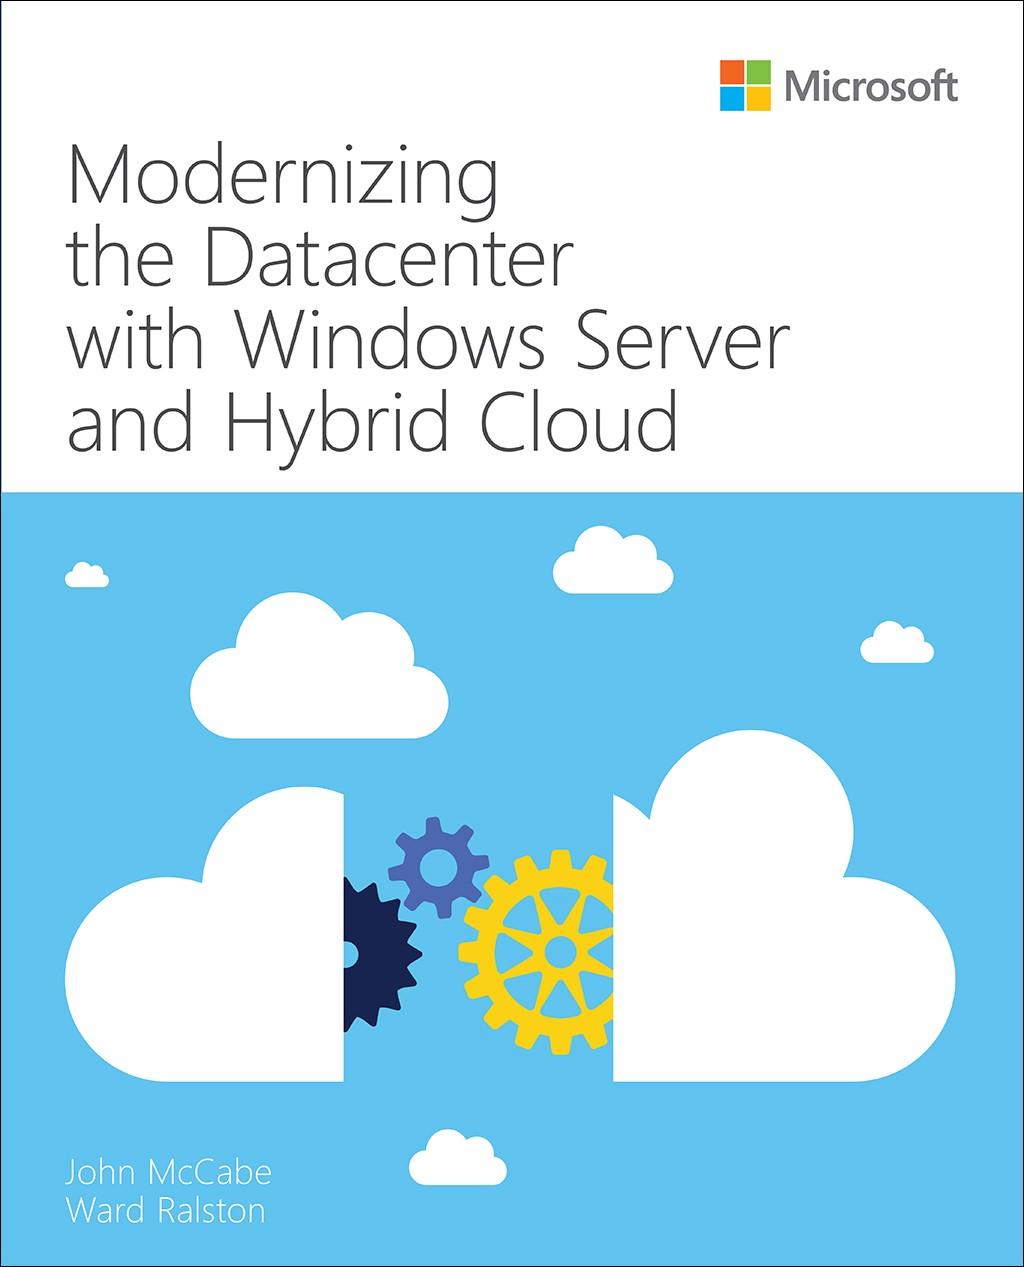 Modernizing the Datacenter with Windows Server and Hybrid Cloud